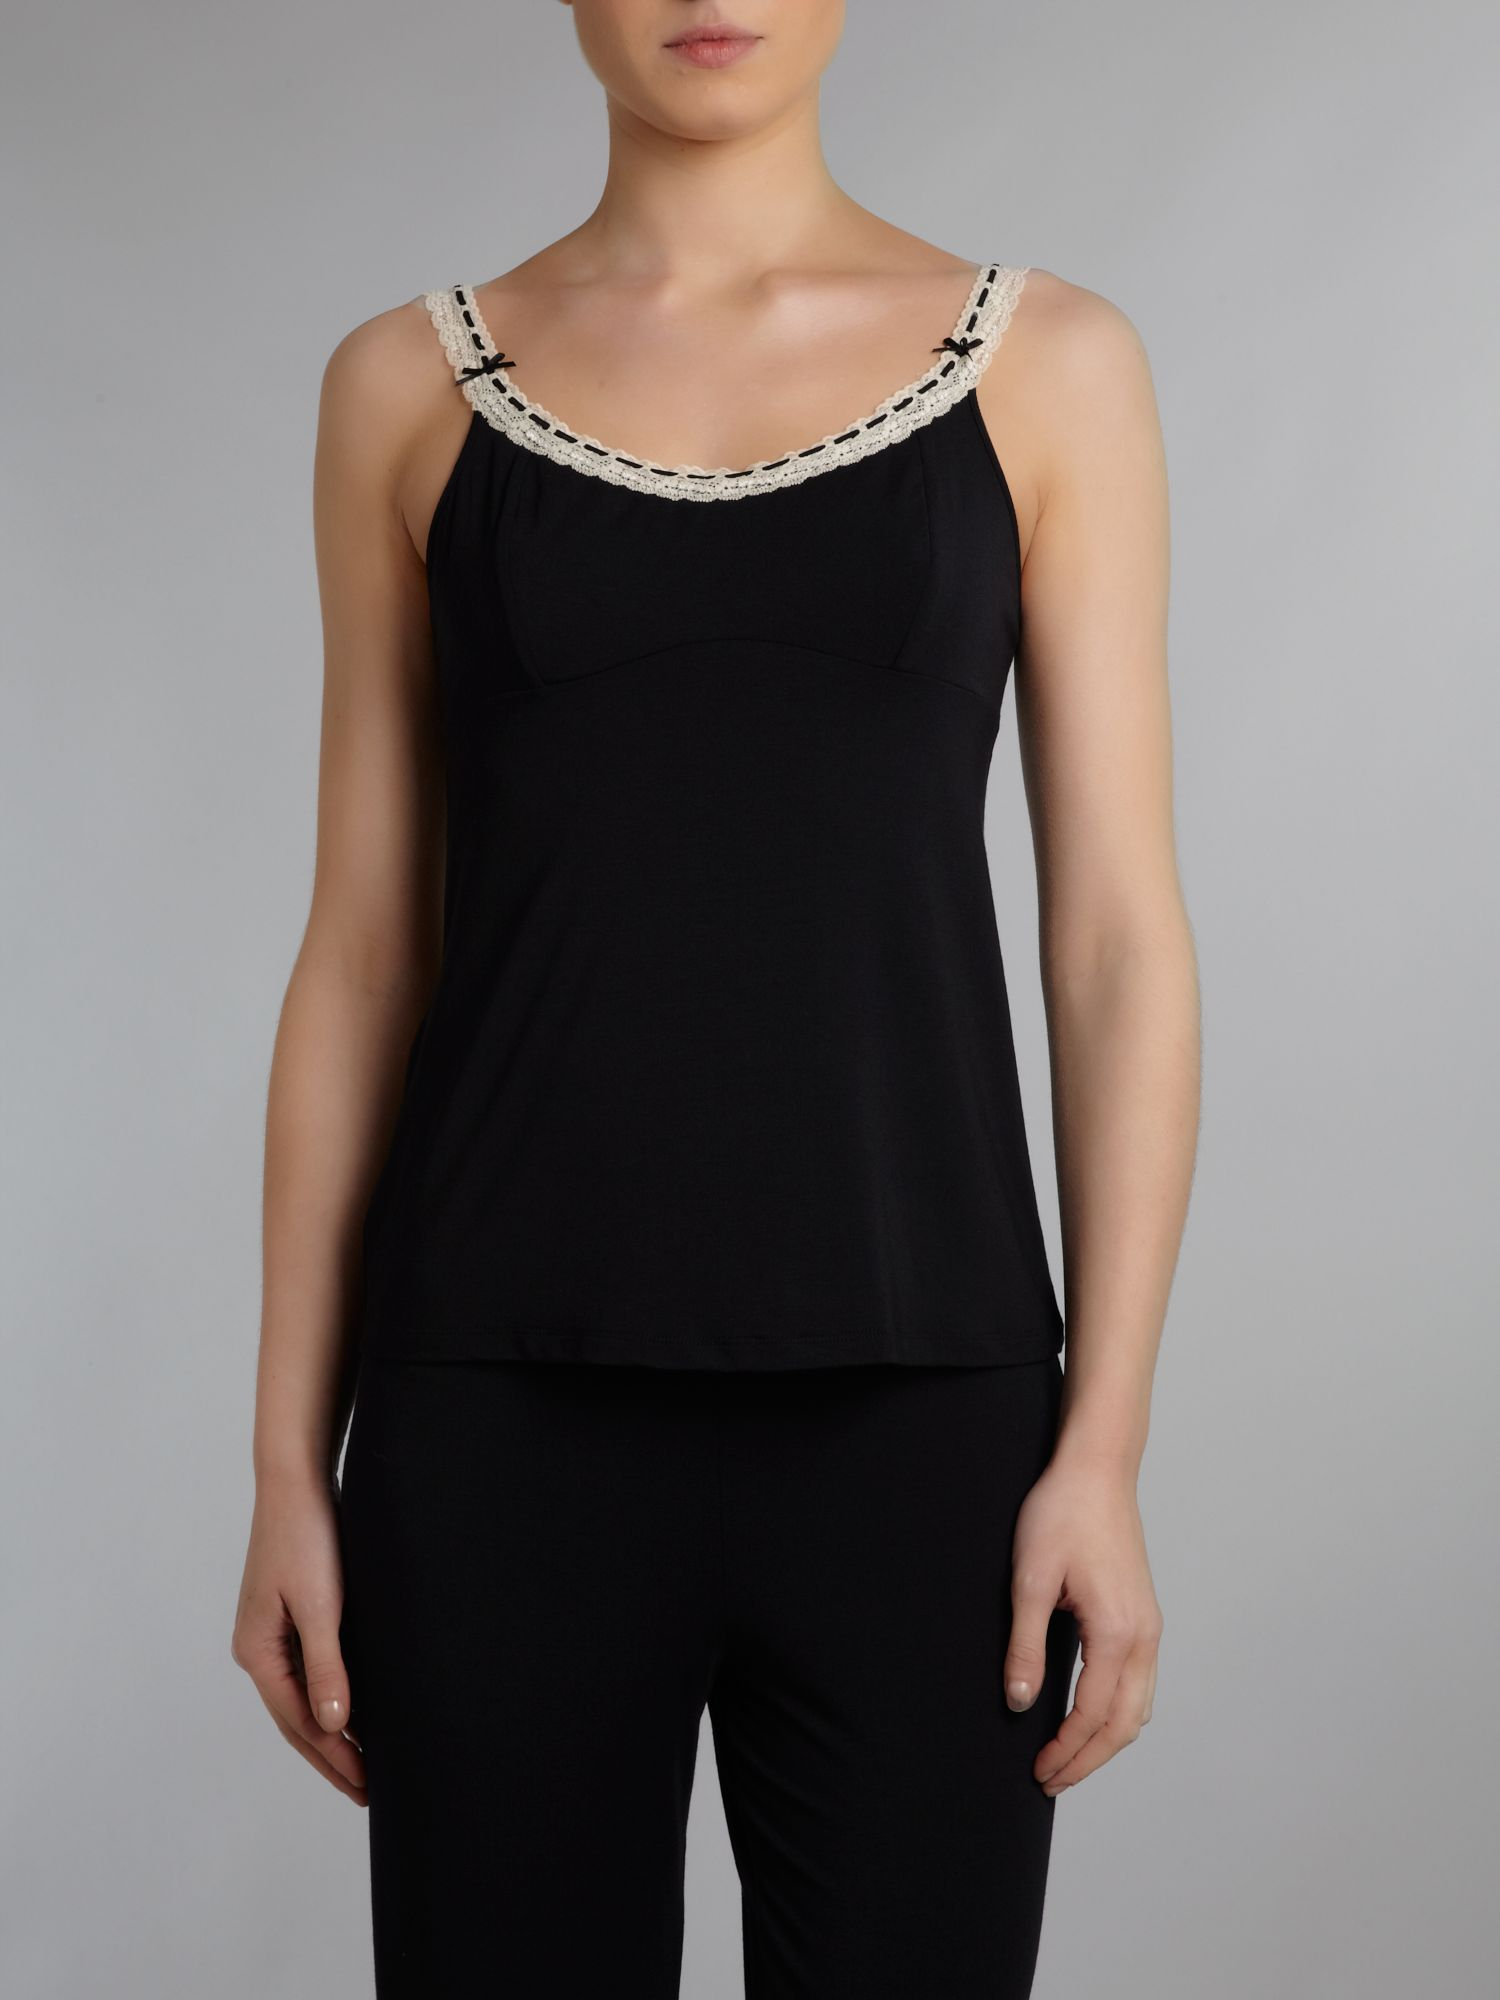 Daisy chains camisole